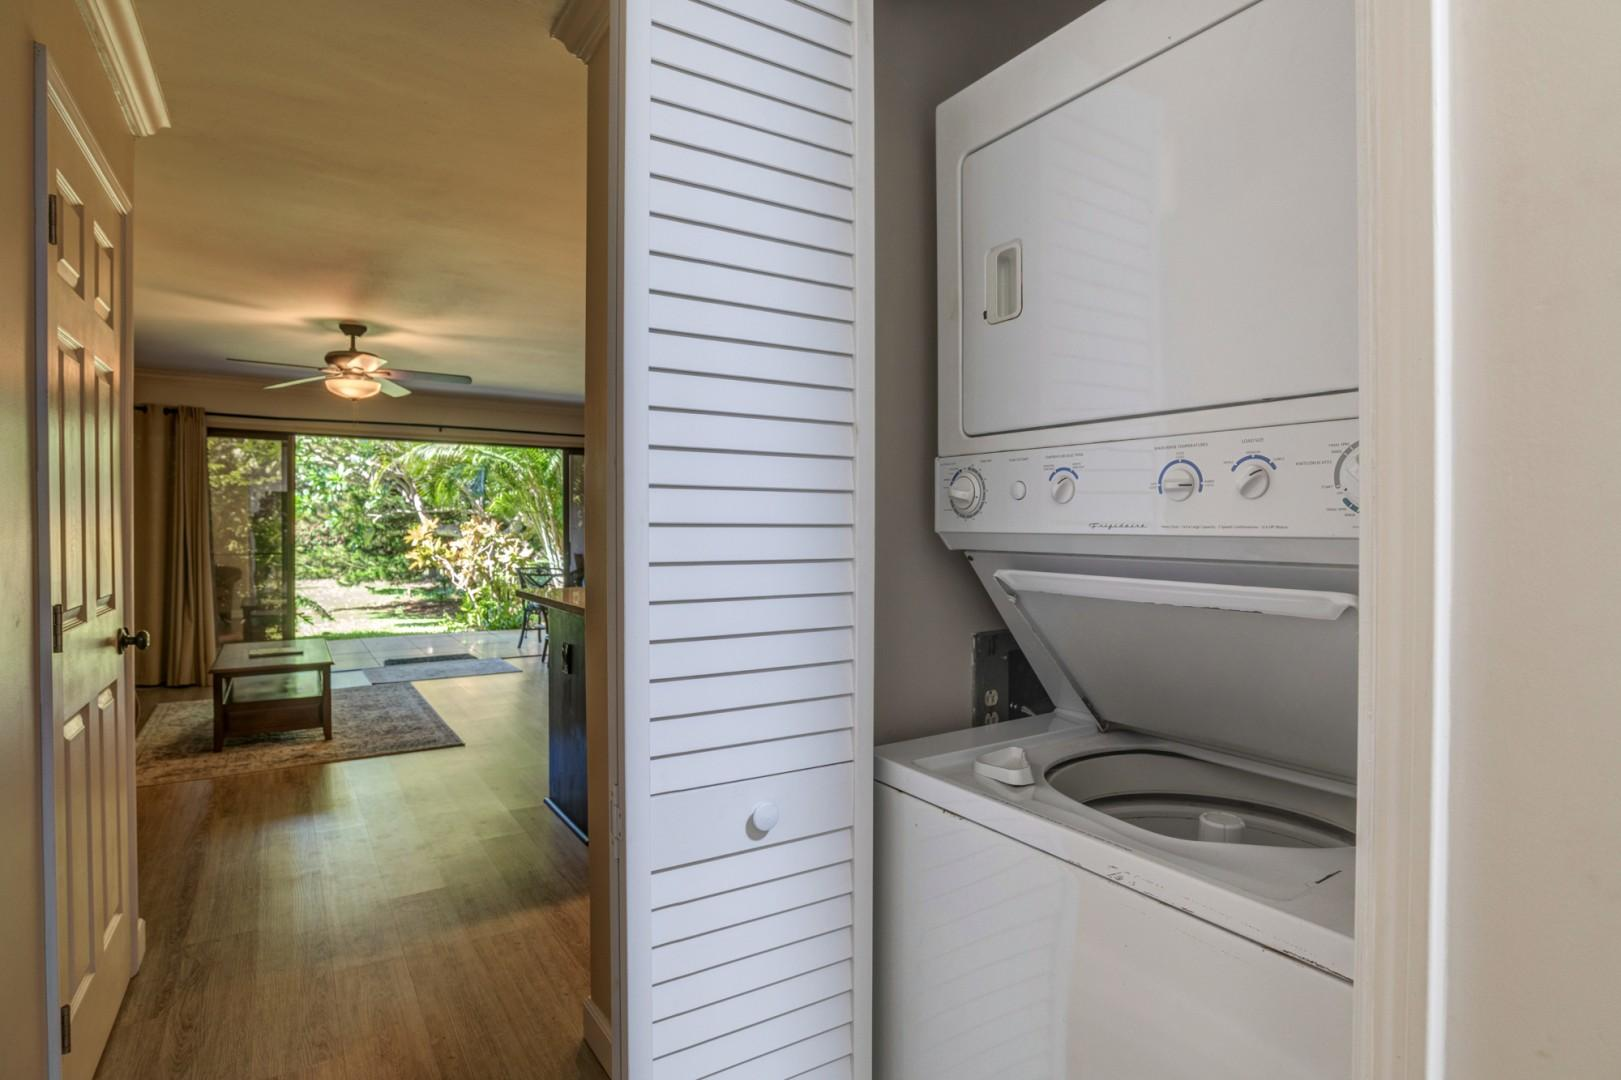 Washer & Dryer inside the unit